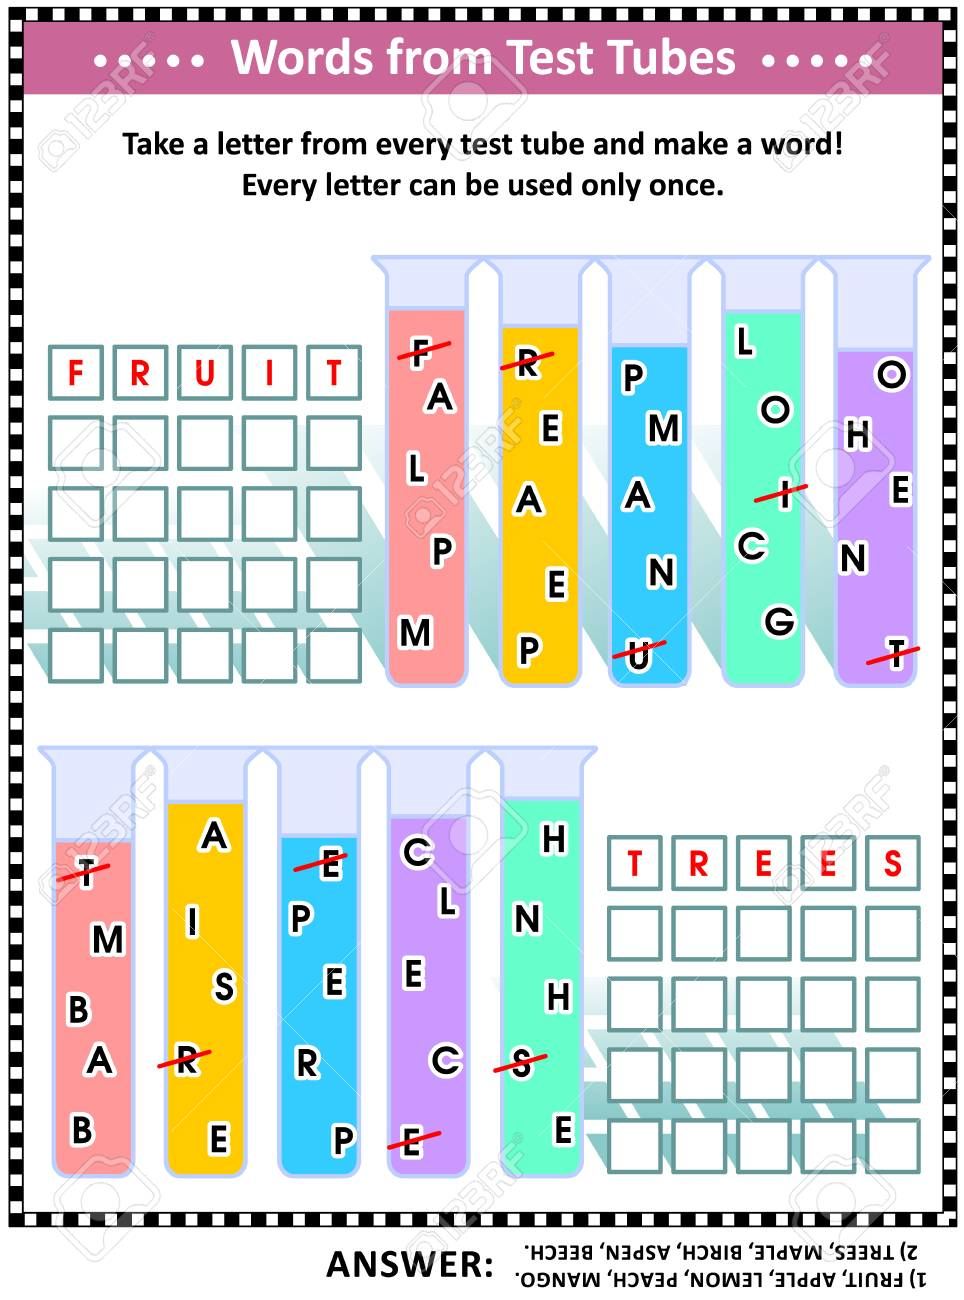 Word game (English language) for kids or adults: Make five words